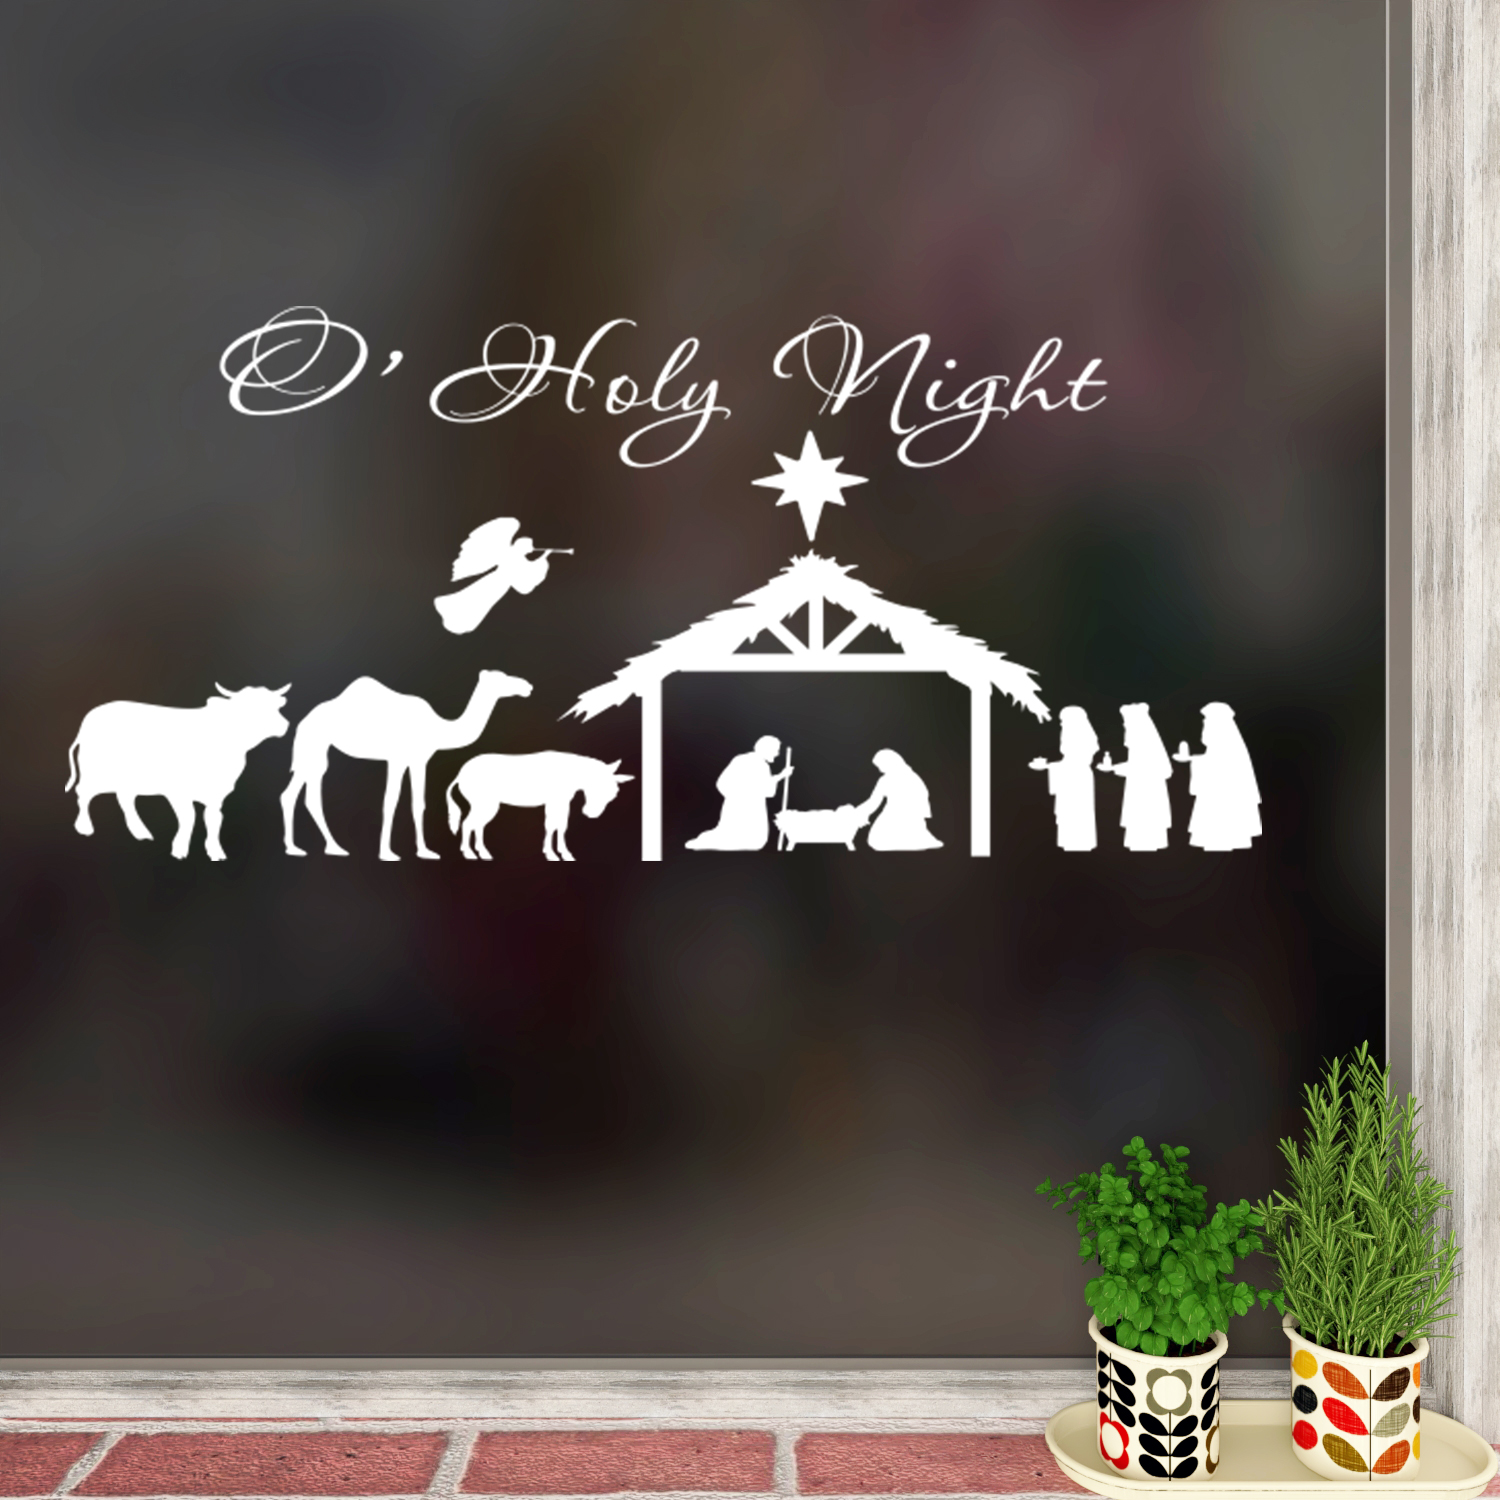 O' Holy Night Decal Nativity Scene Wall Decal Quote